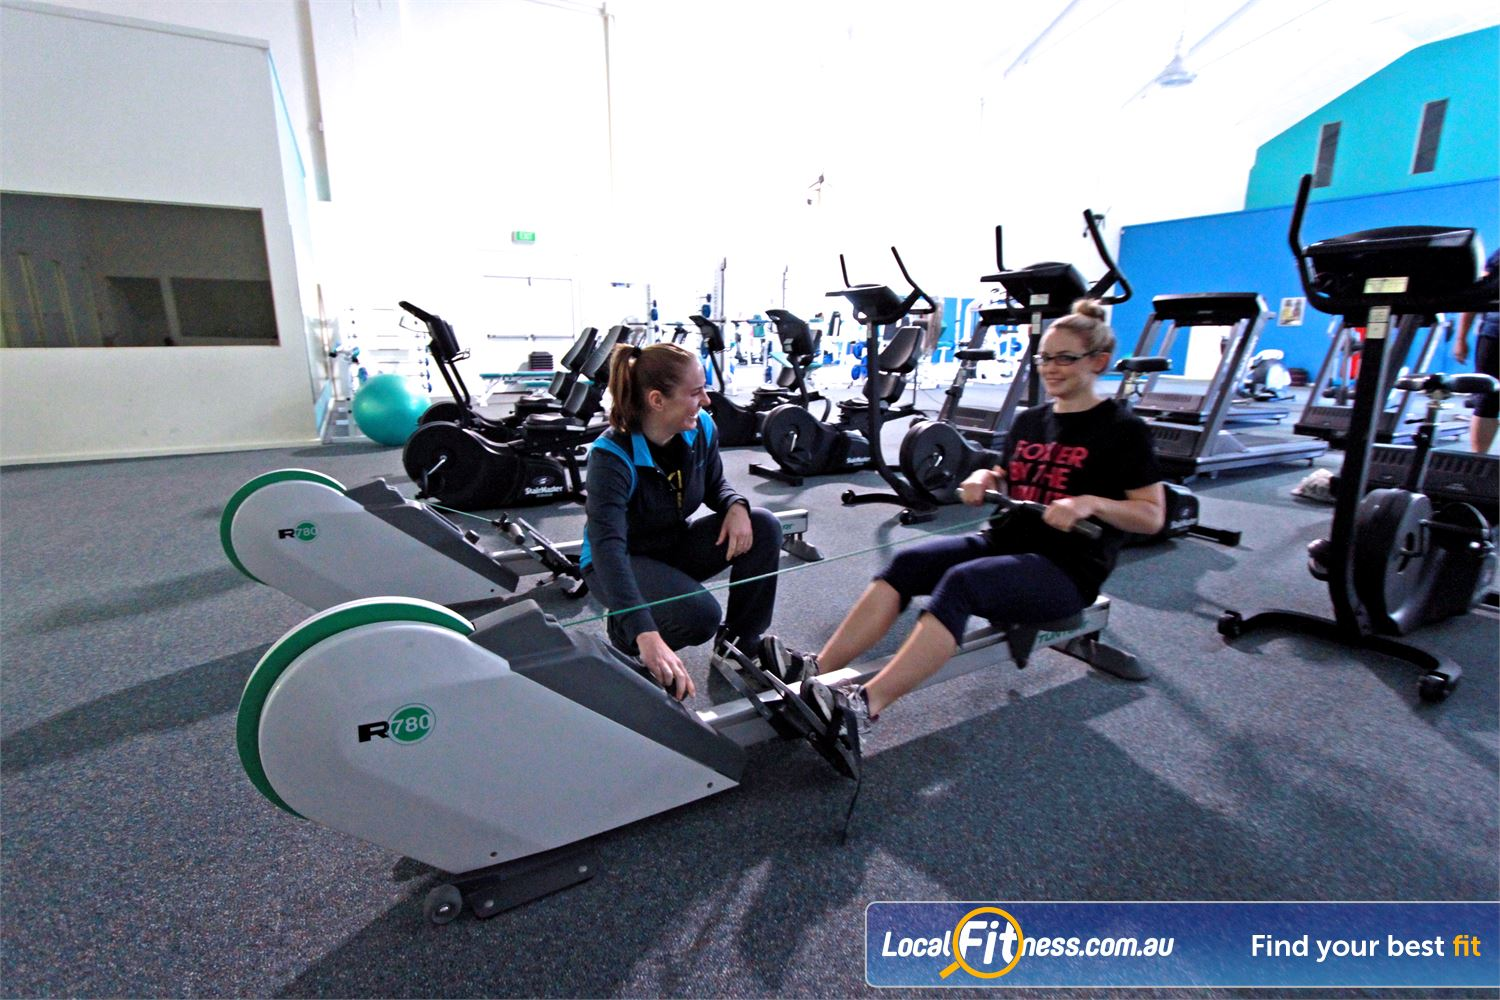 Fernwood Fitness Woonona Vary your cardio workout with indoor rowing in Woonona.